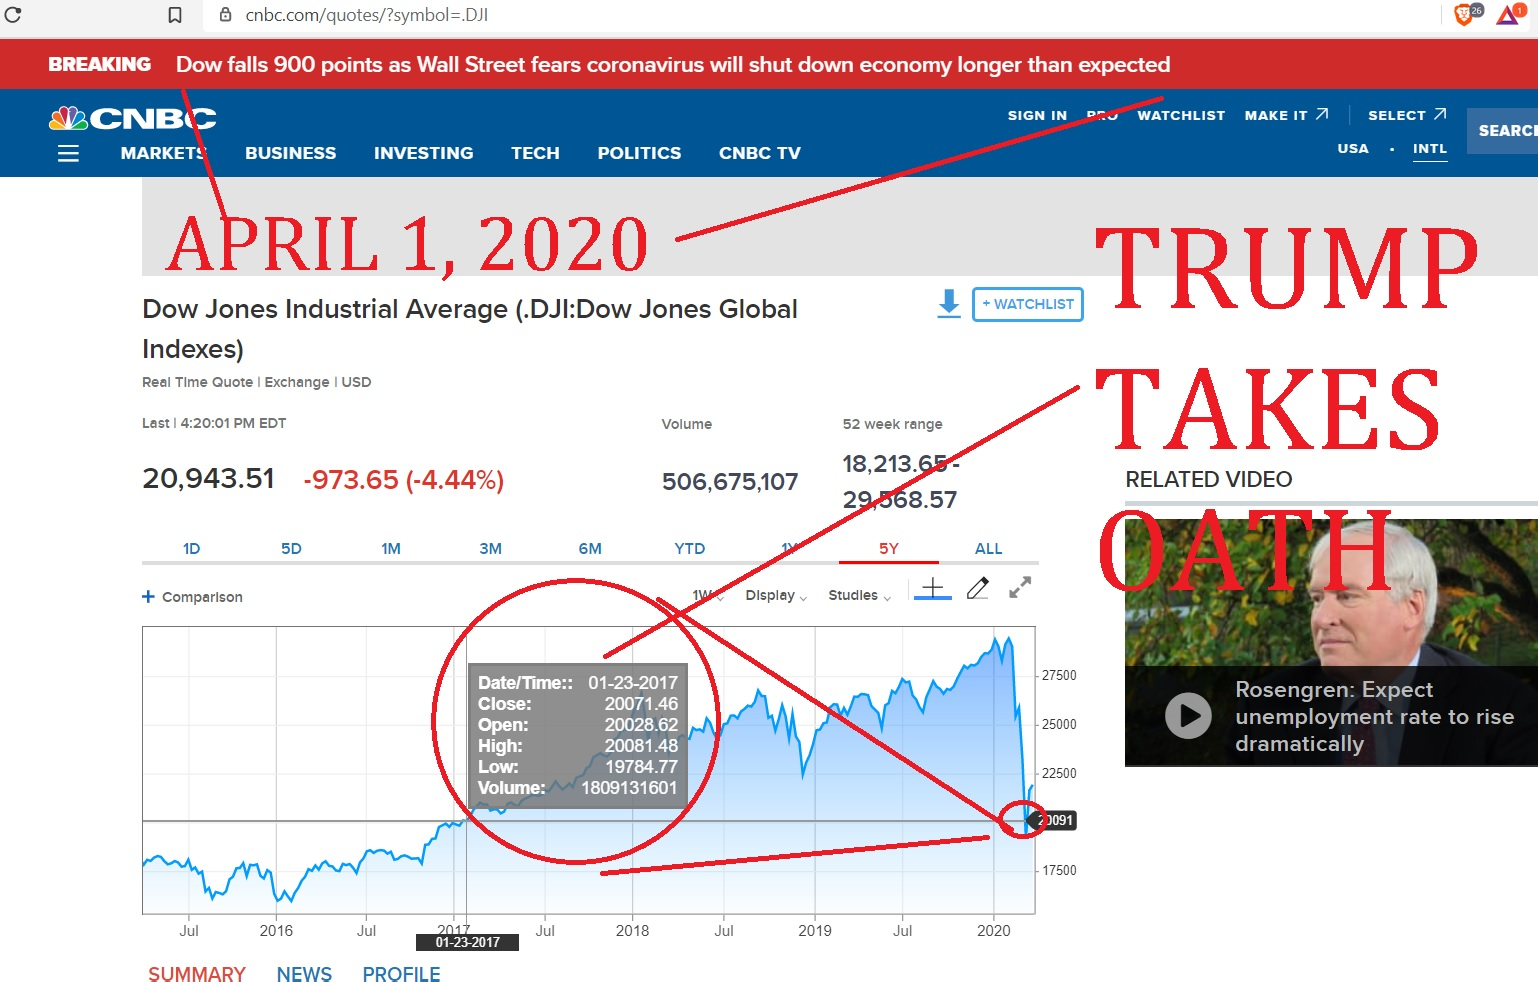 WHEN TRUMP TOOK OFFICE ON JAN 2017,  DOW WAS AT 20071 - AND NOW, 3 YEARS 2 MONTHS AND 14 DAYS LATER DOW IS AT  20,943 ON ARRIL 1, 2020, WHATS THE CAGR IE CUMULATIVE AVERAGE GORWTH RETRUN NUMBER FOR TRUMP'S FAVORITE NUMBER